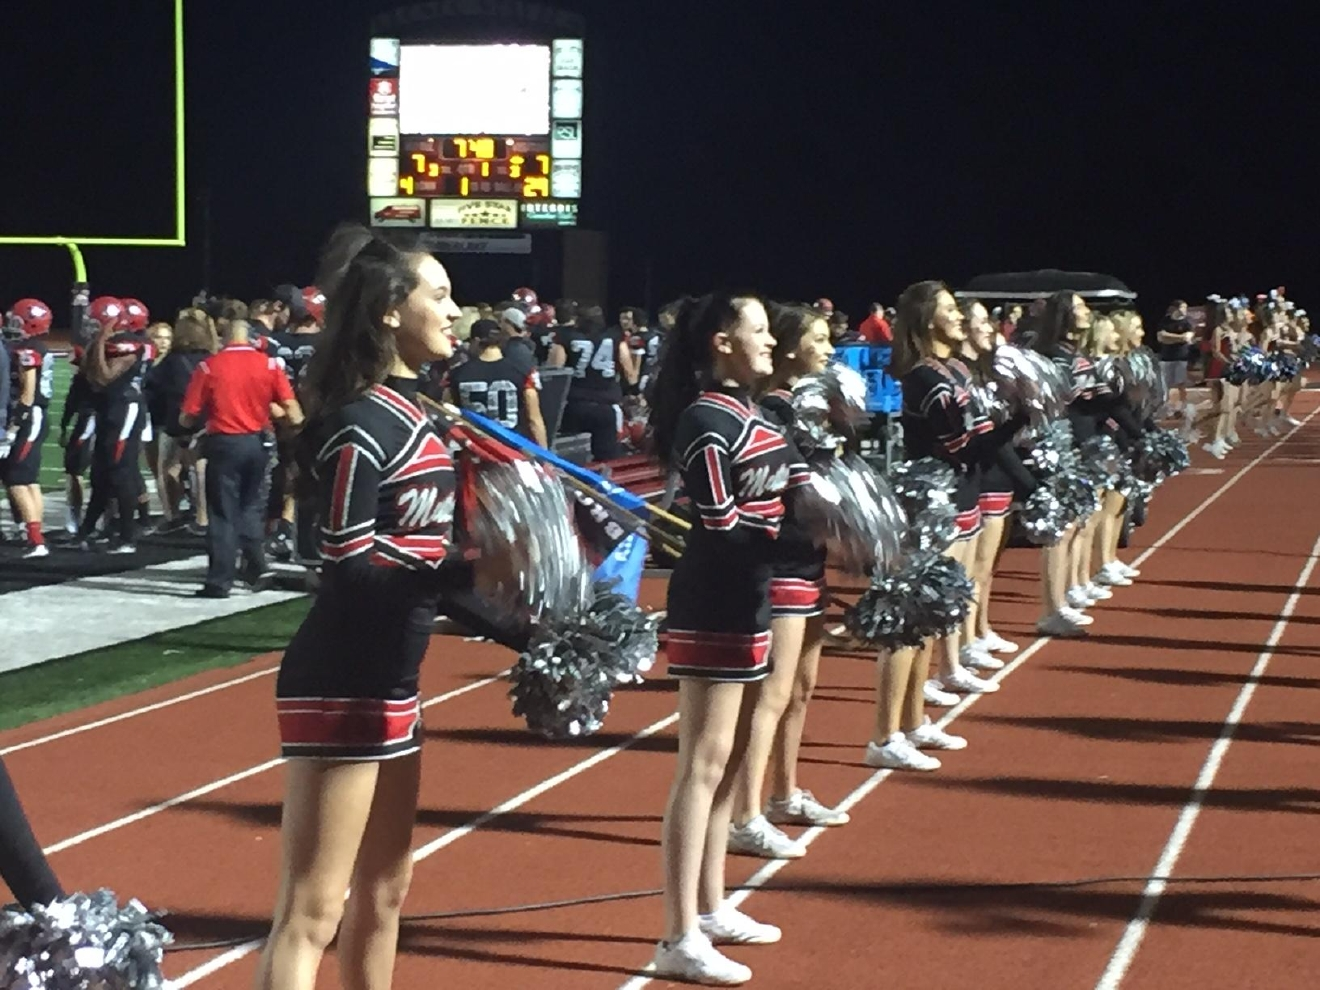 The Mustang cheerleaders at the  Southmoore at Mustang football game on Friday, Oct. 28, 2016 (Scott Noland / KOKH)